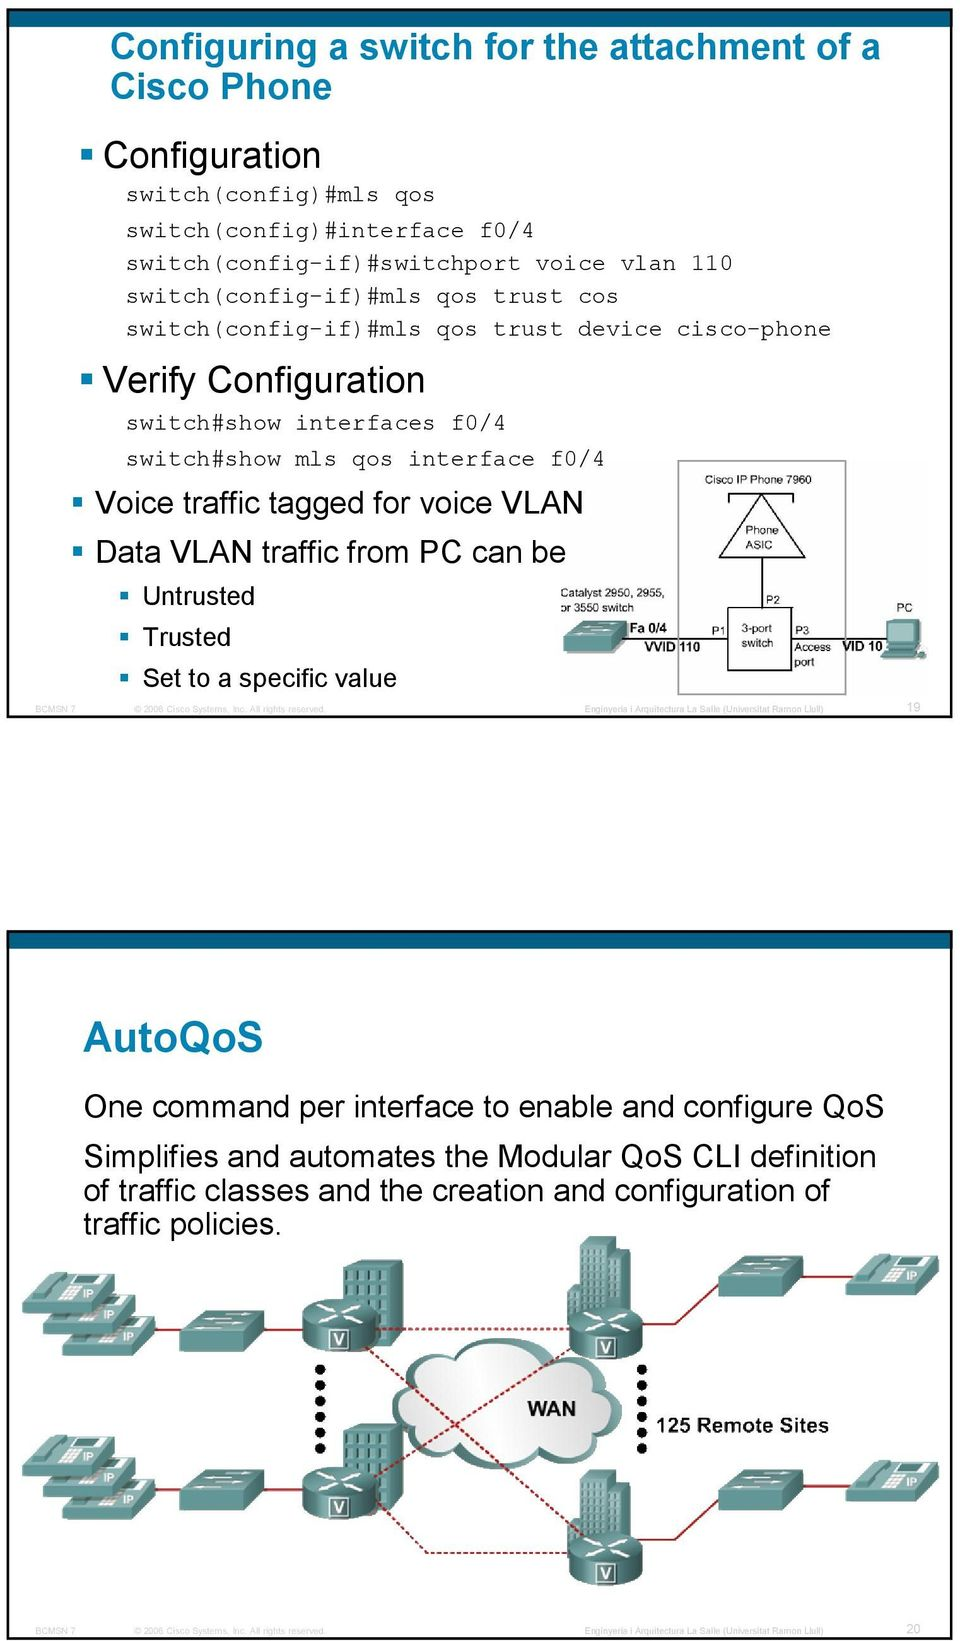 qos interface f0/4 Voice traffic tagged for voice VLAN Data VLAN traffic from PC can be Untrusted Trusted Set to a specific value 19 AutoQoS One command per